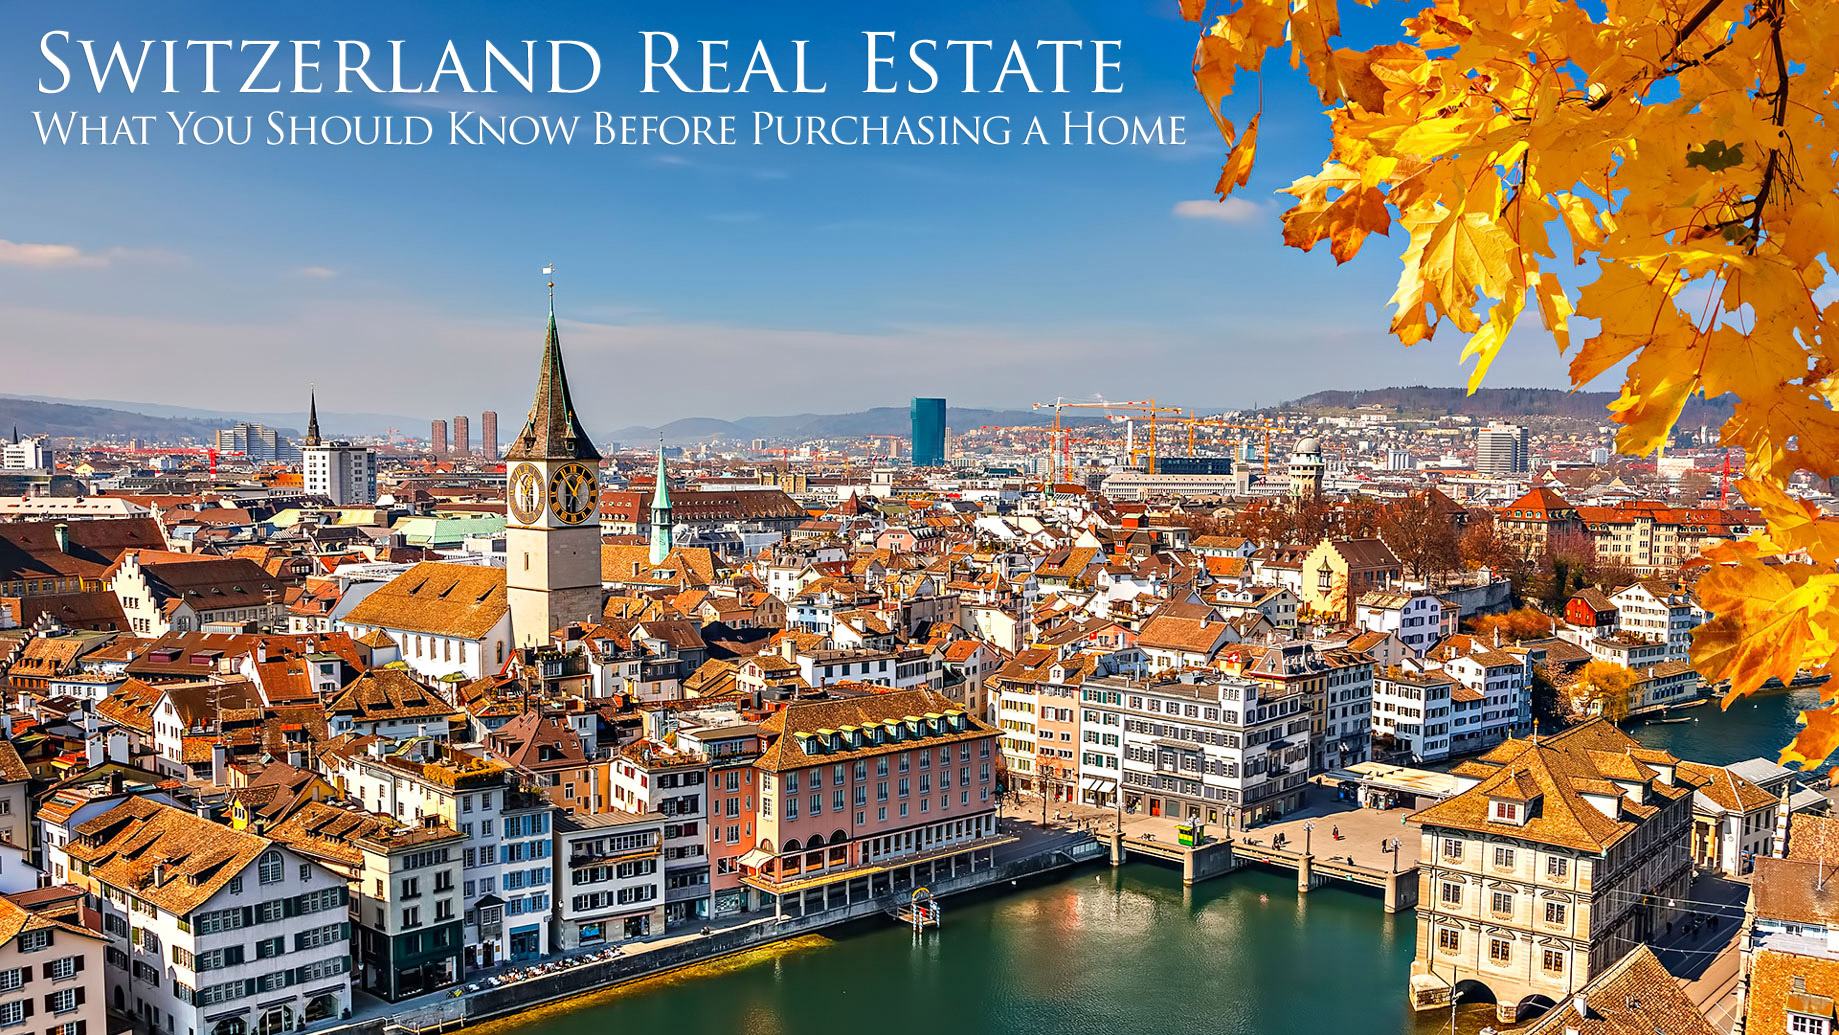 Switzerland Real Estate - What You Should Know Before Purchasing a Home